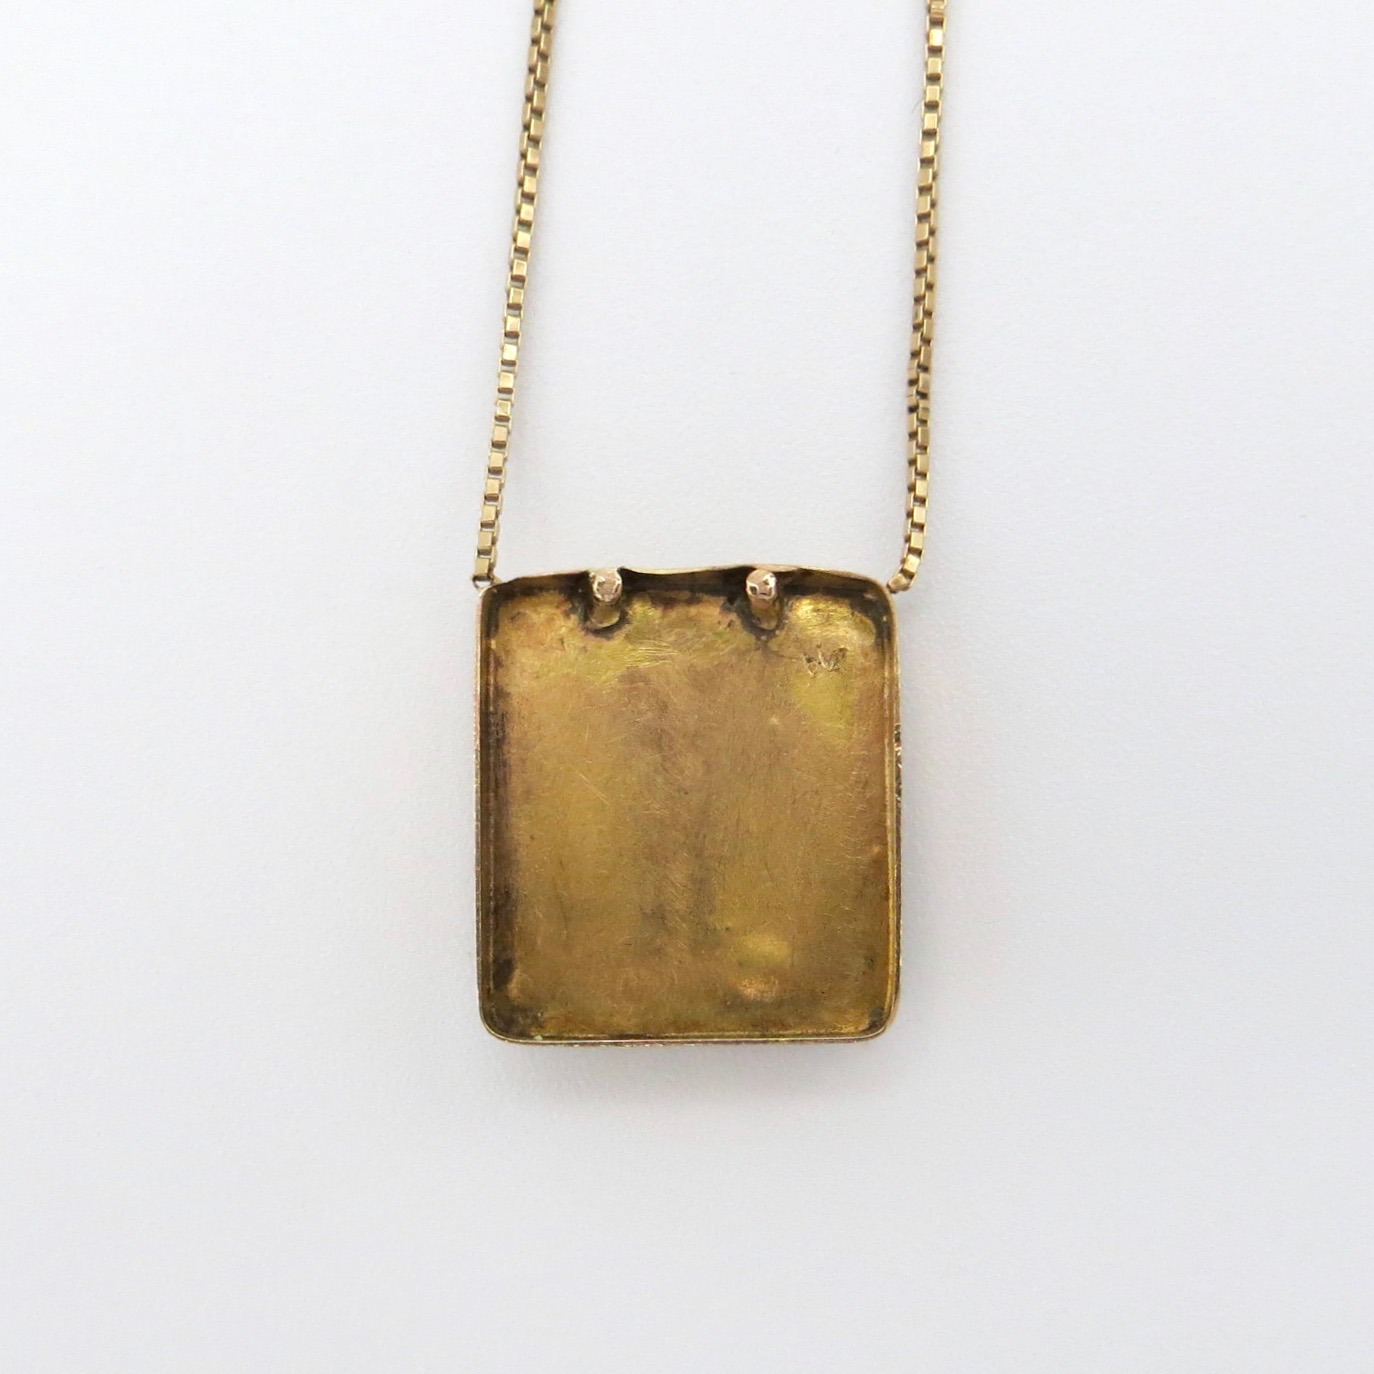 Gold Frog Necklace